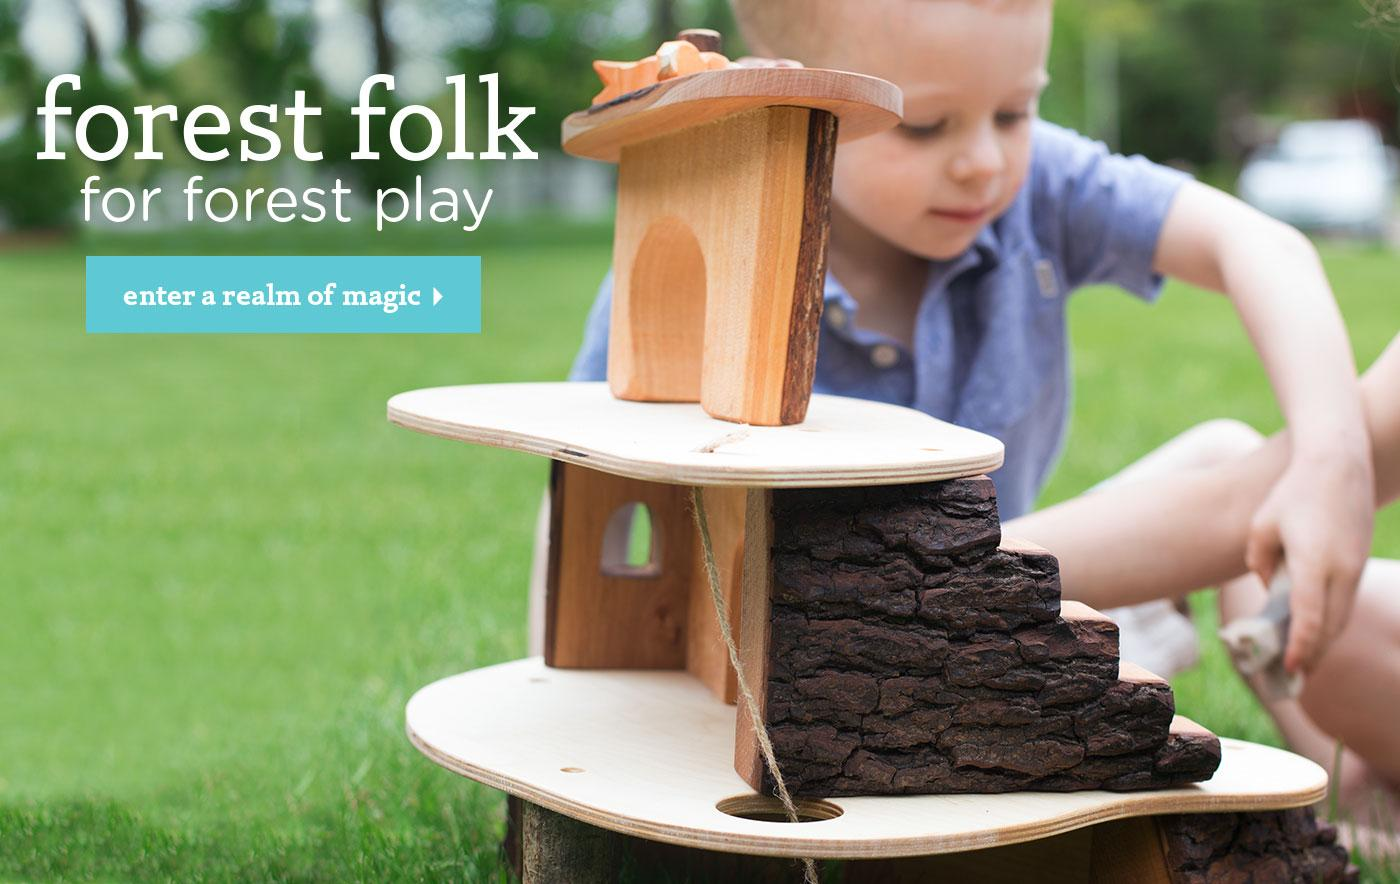 Forest Folk for Forest Play